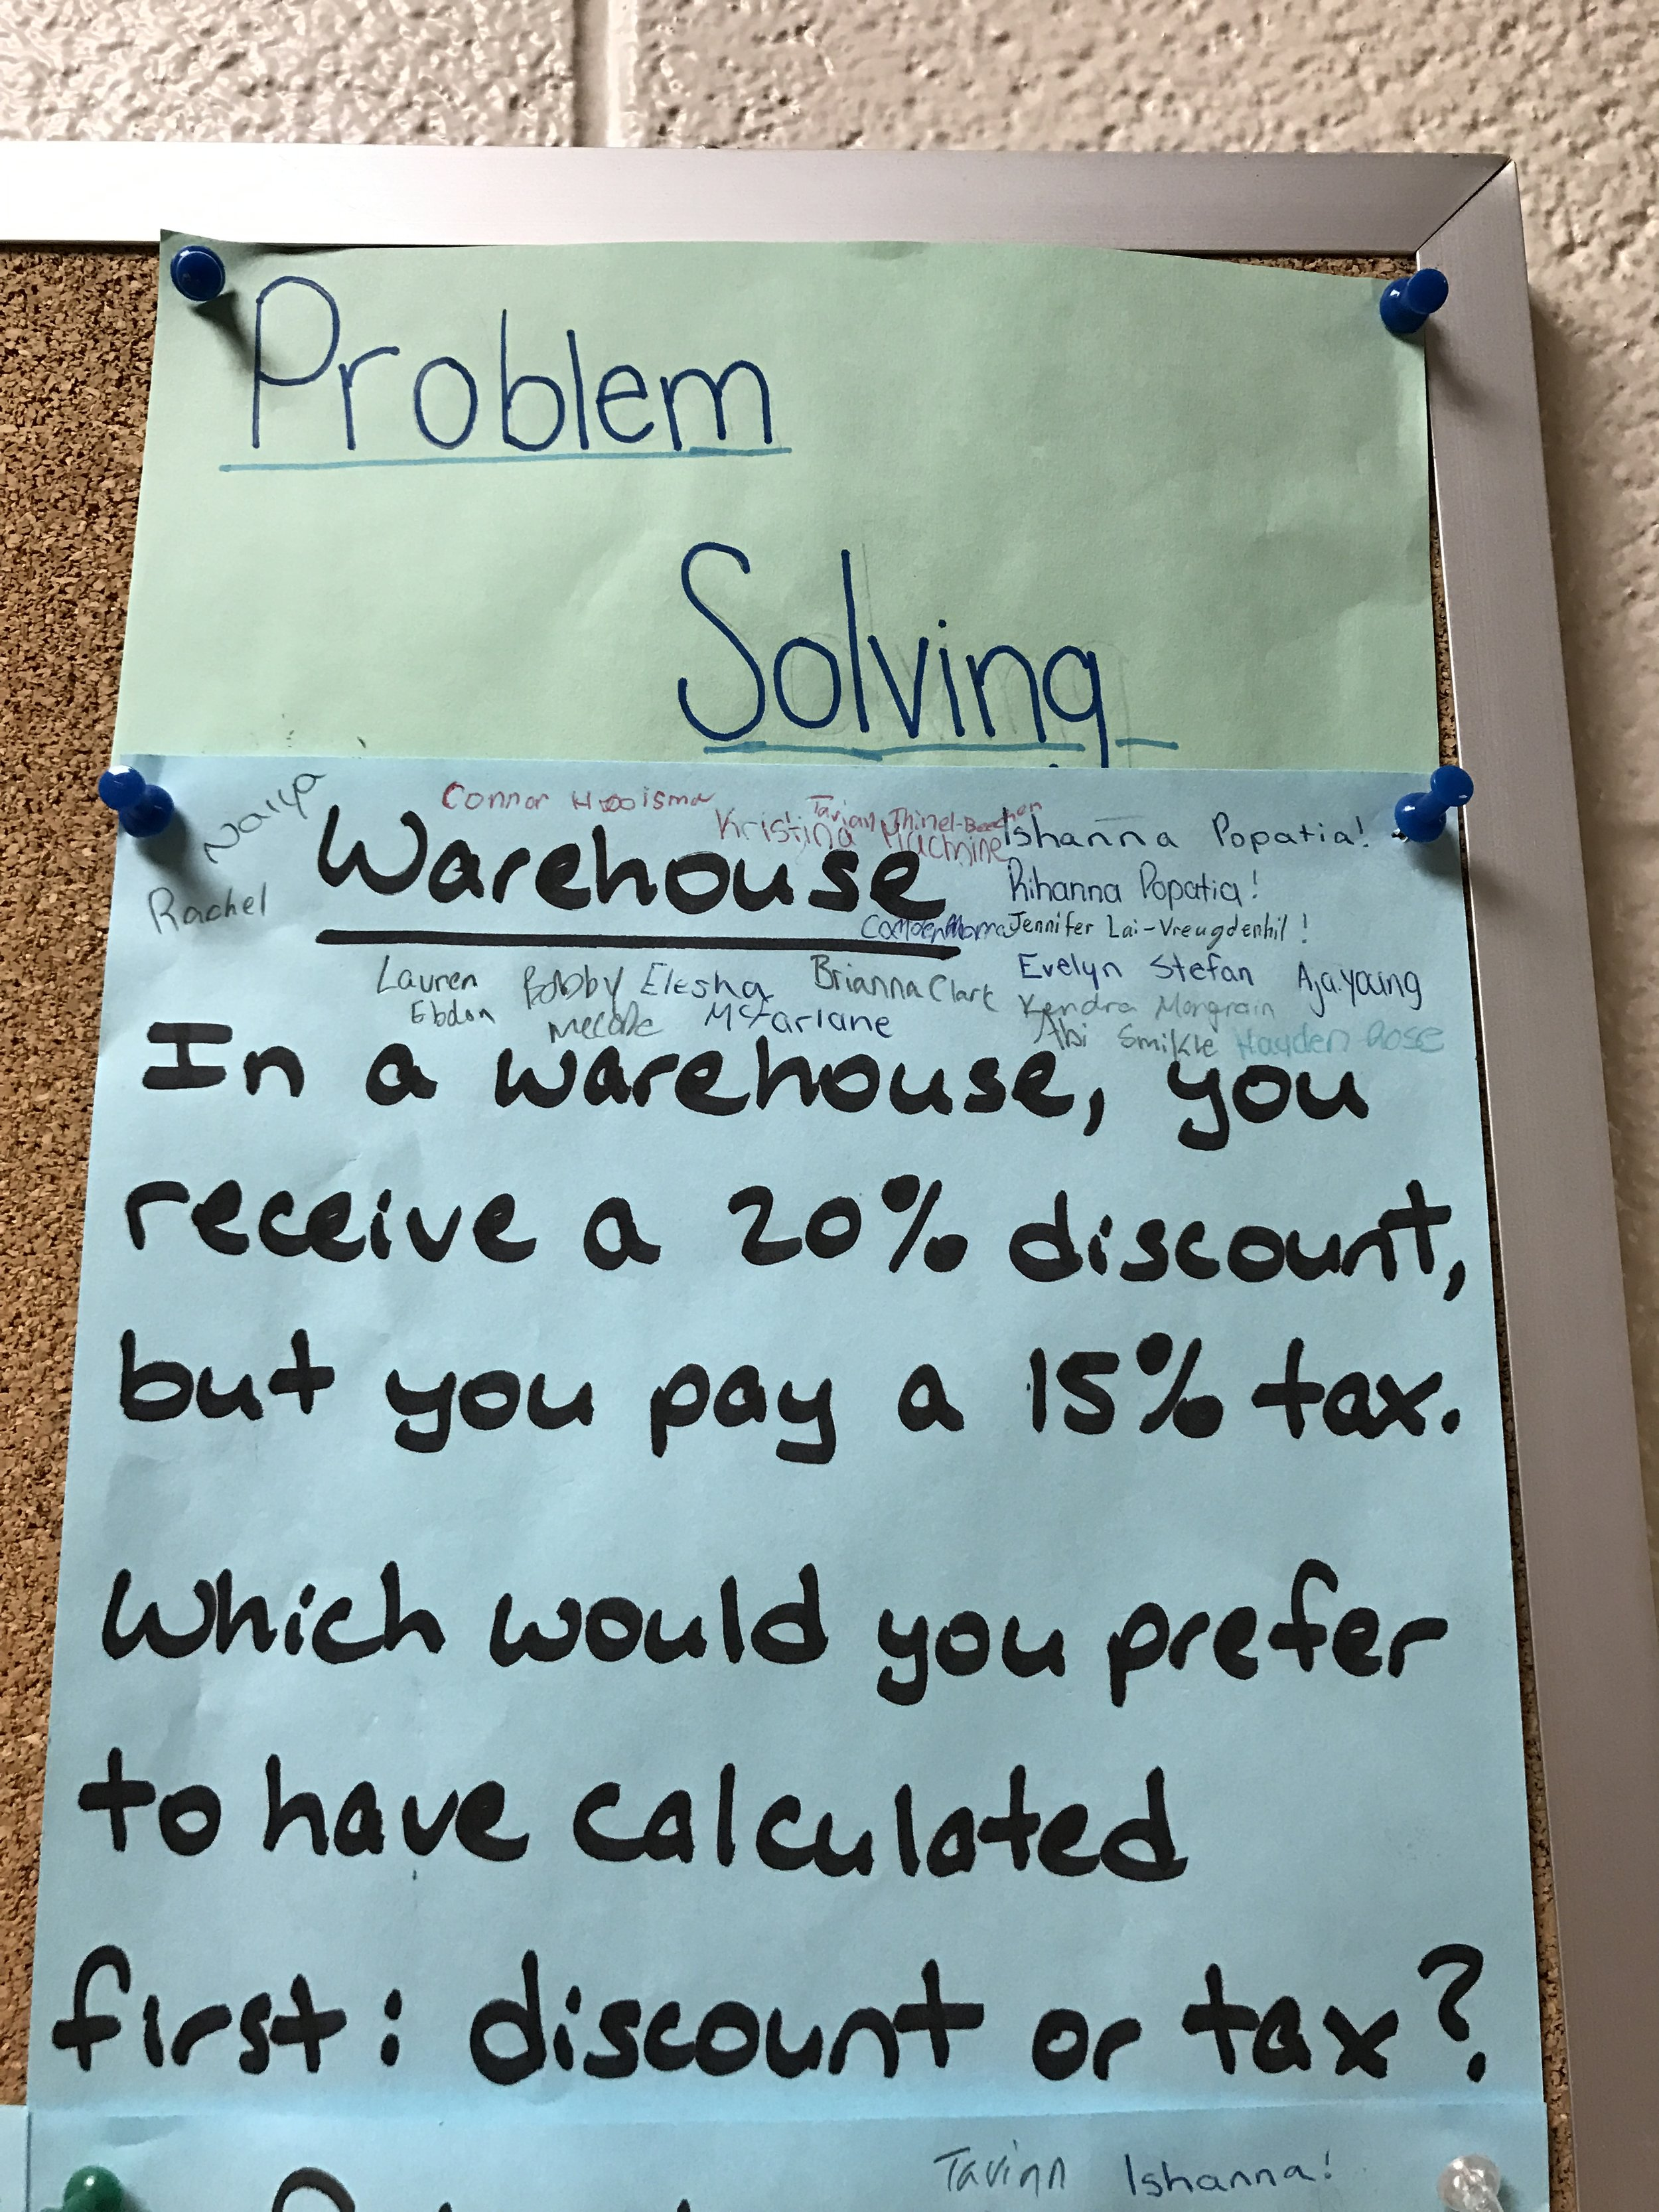 2016-11-22-math-journal-warehouse-problem.jpg